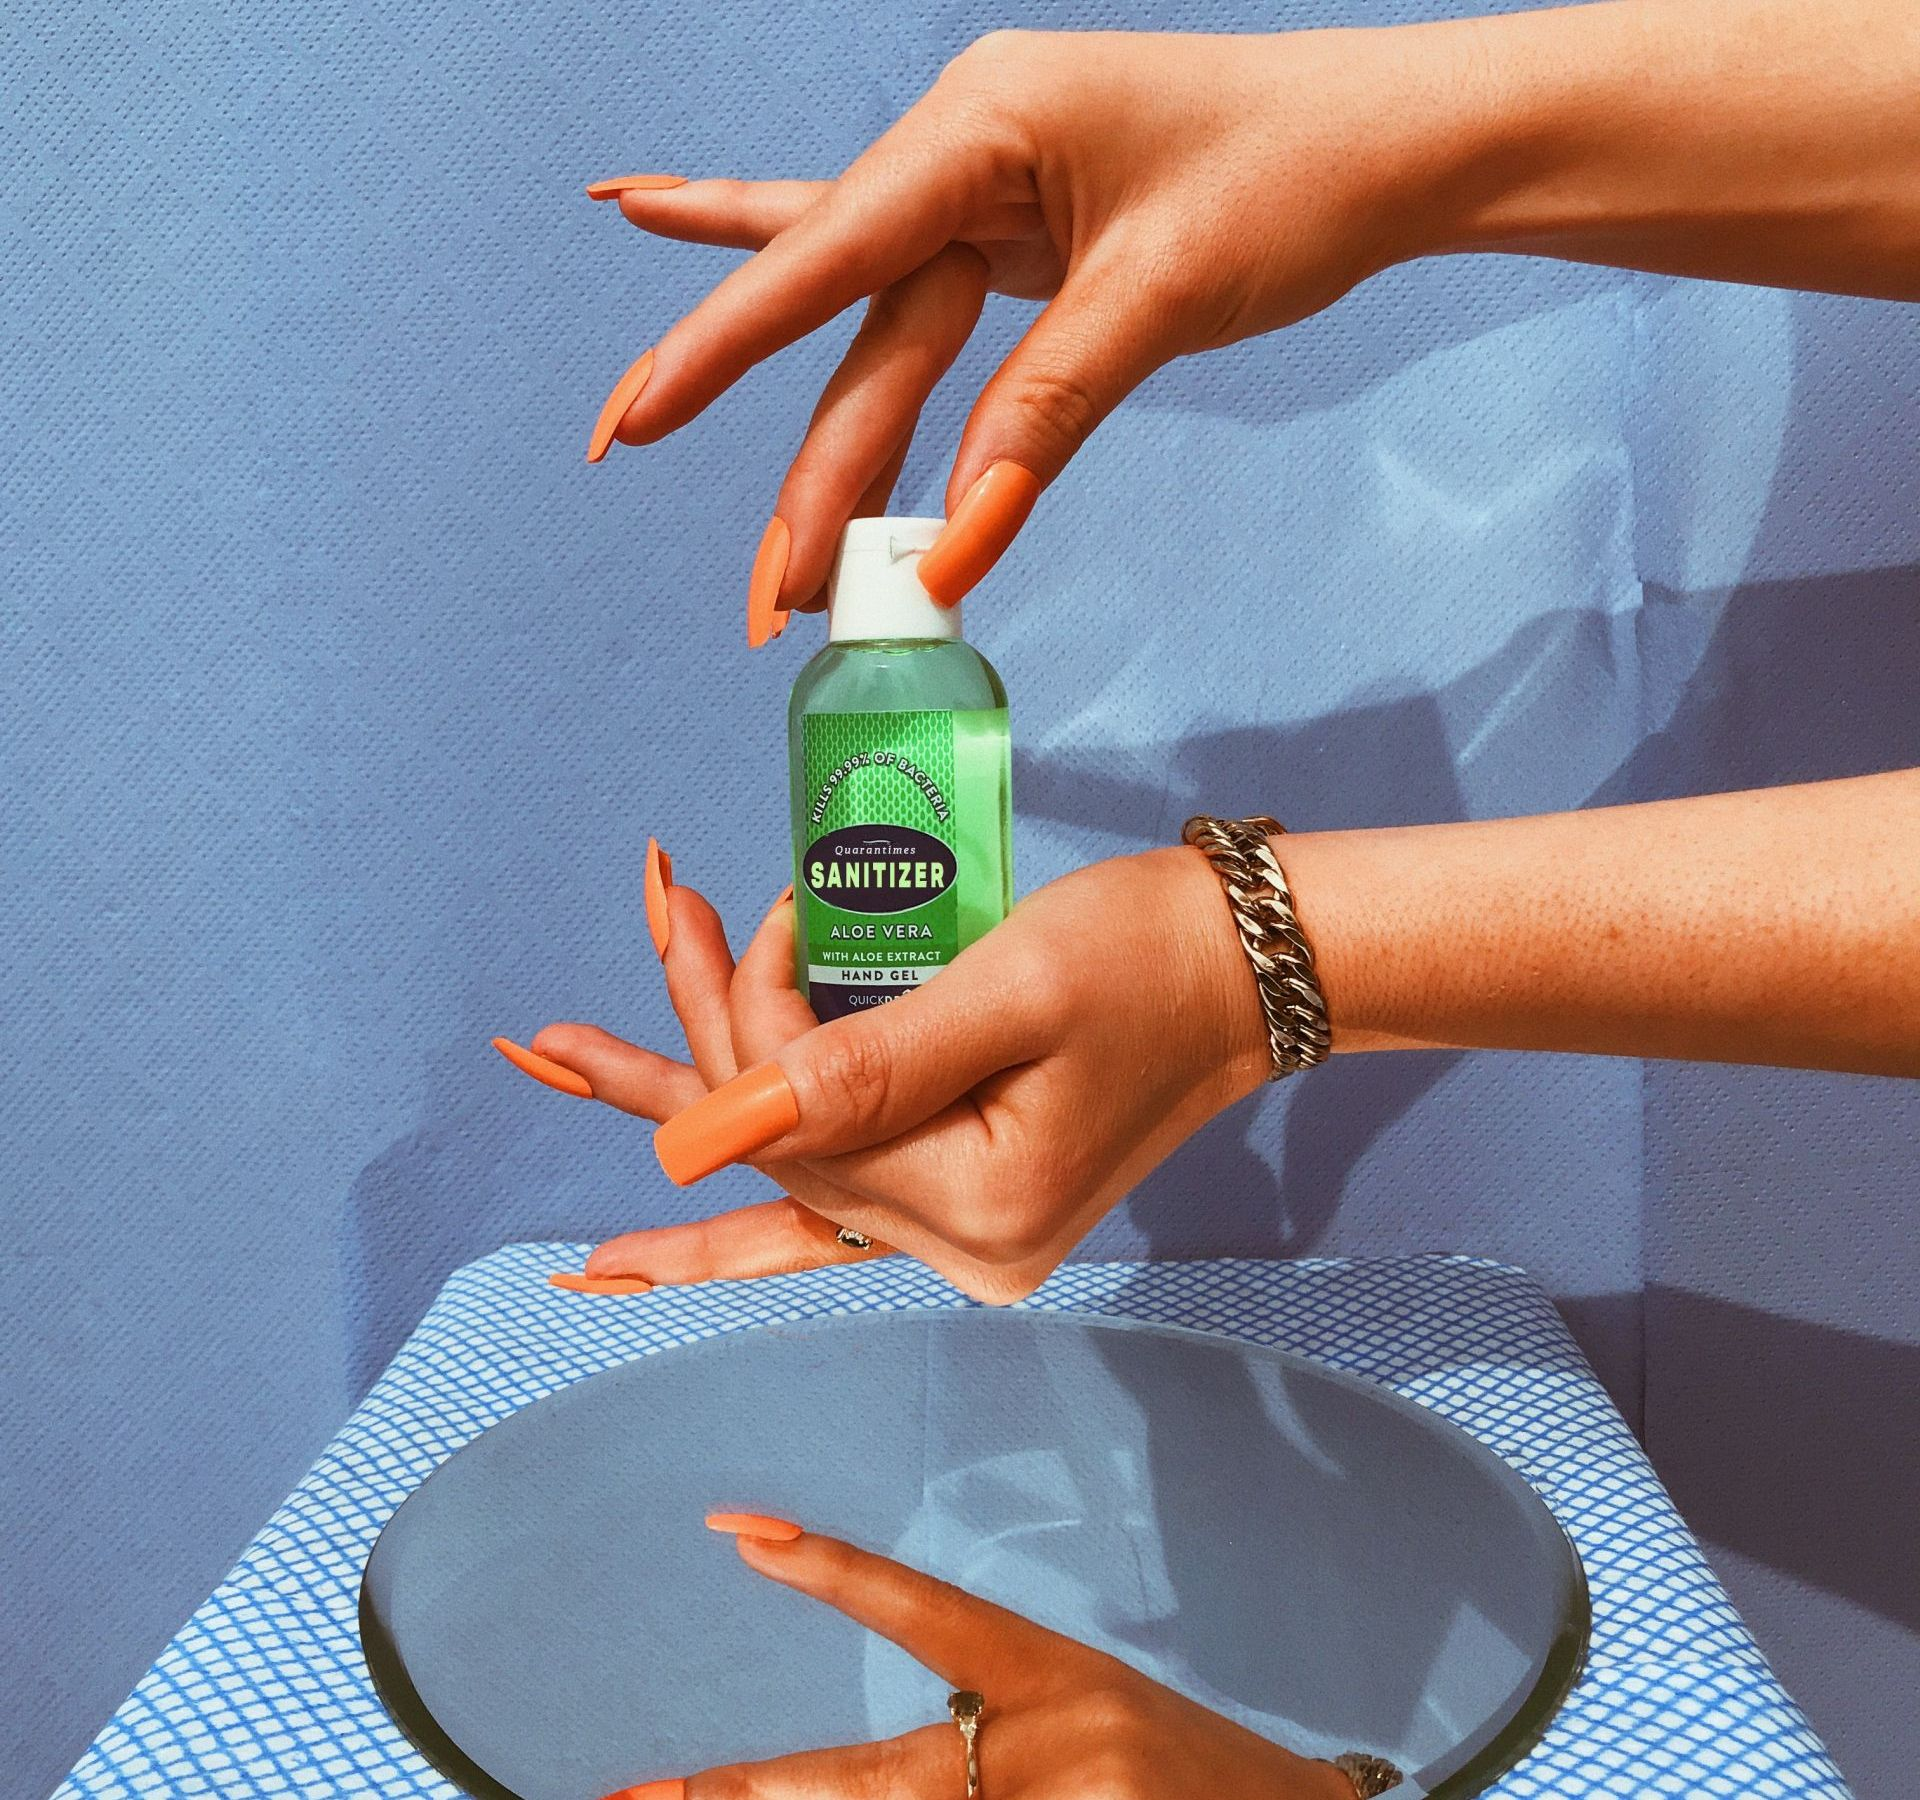 Be wise, sanitize. Image created by NTROPIC STUDIOS. Submitted for United Nations Global Call Out To Creatives - help stop the spread of COVID-19.